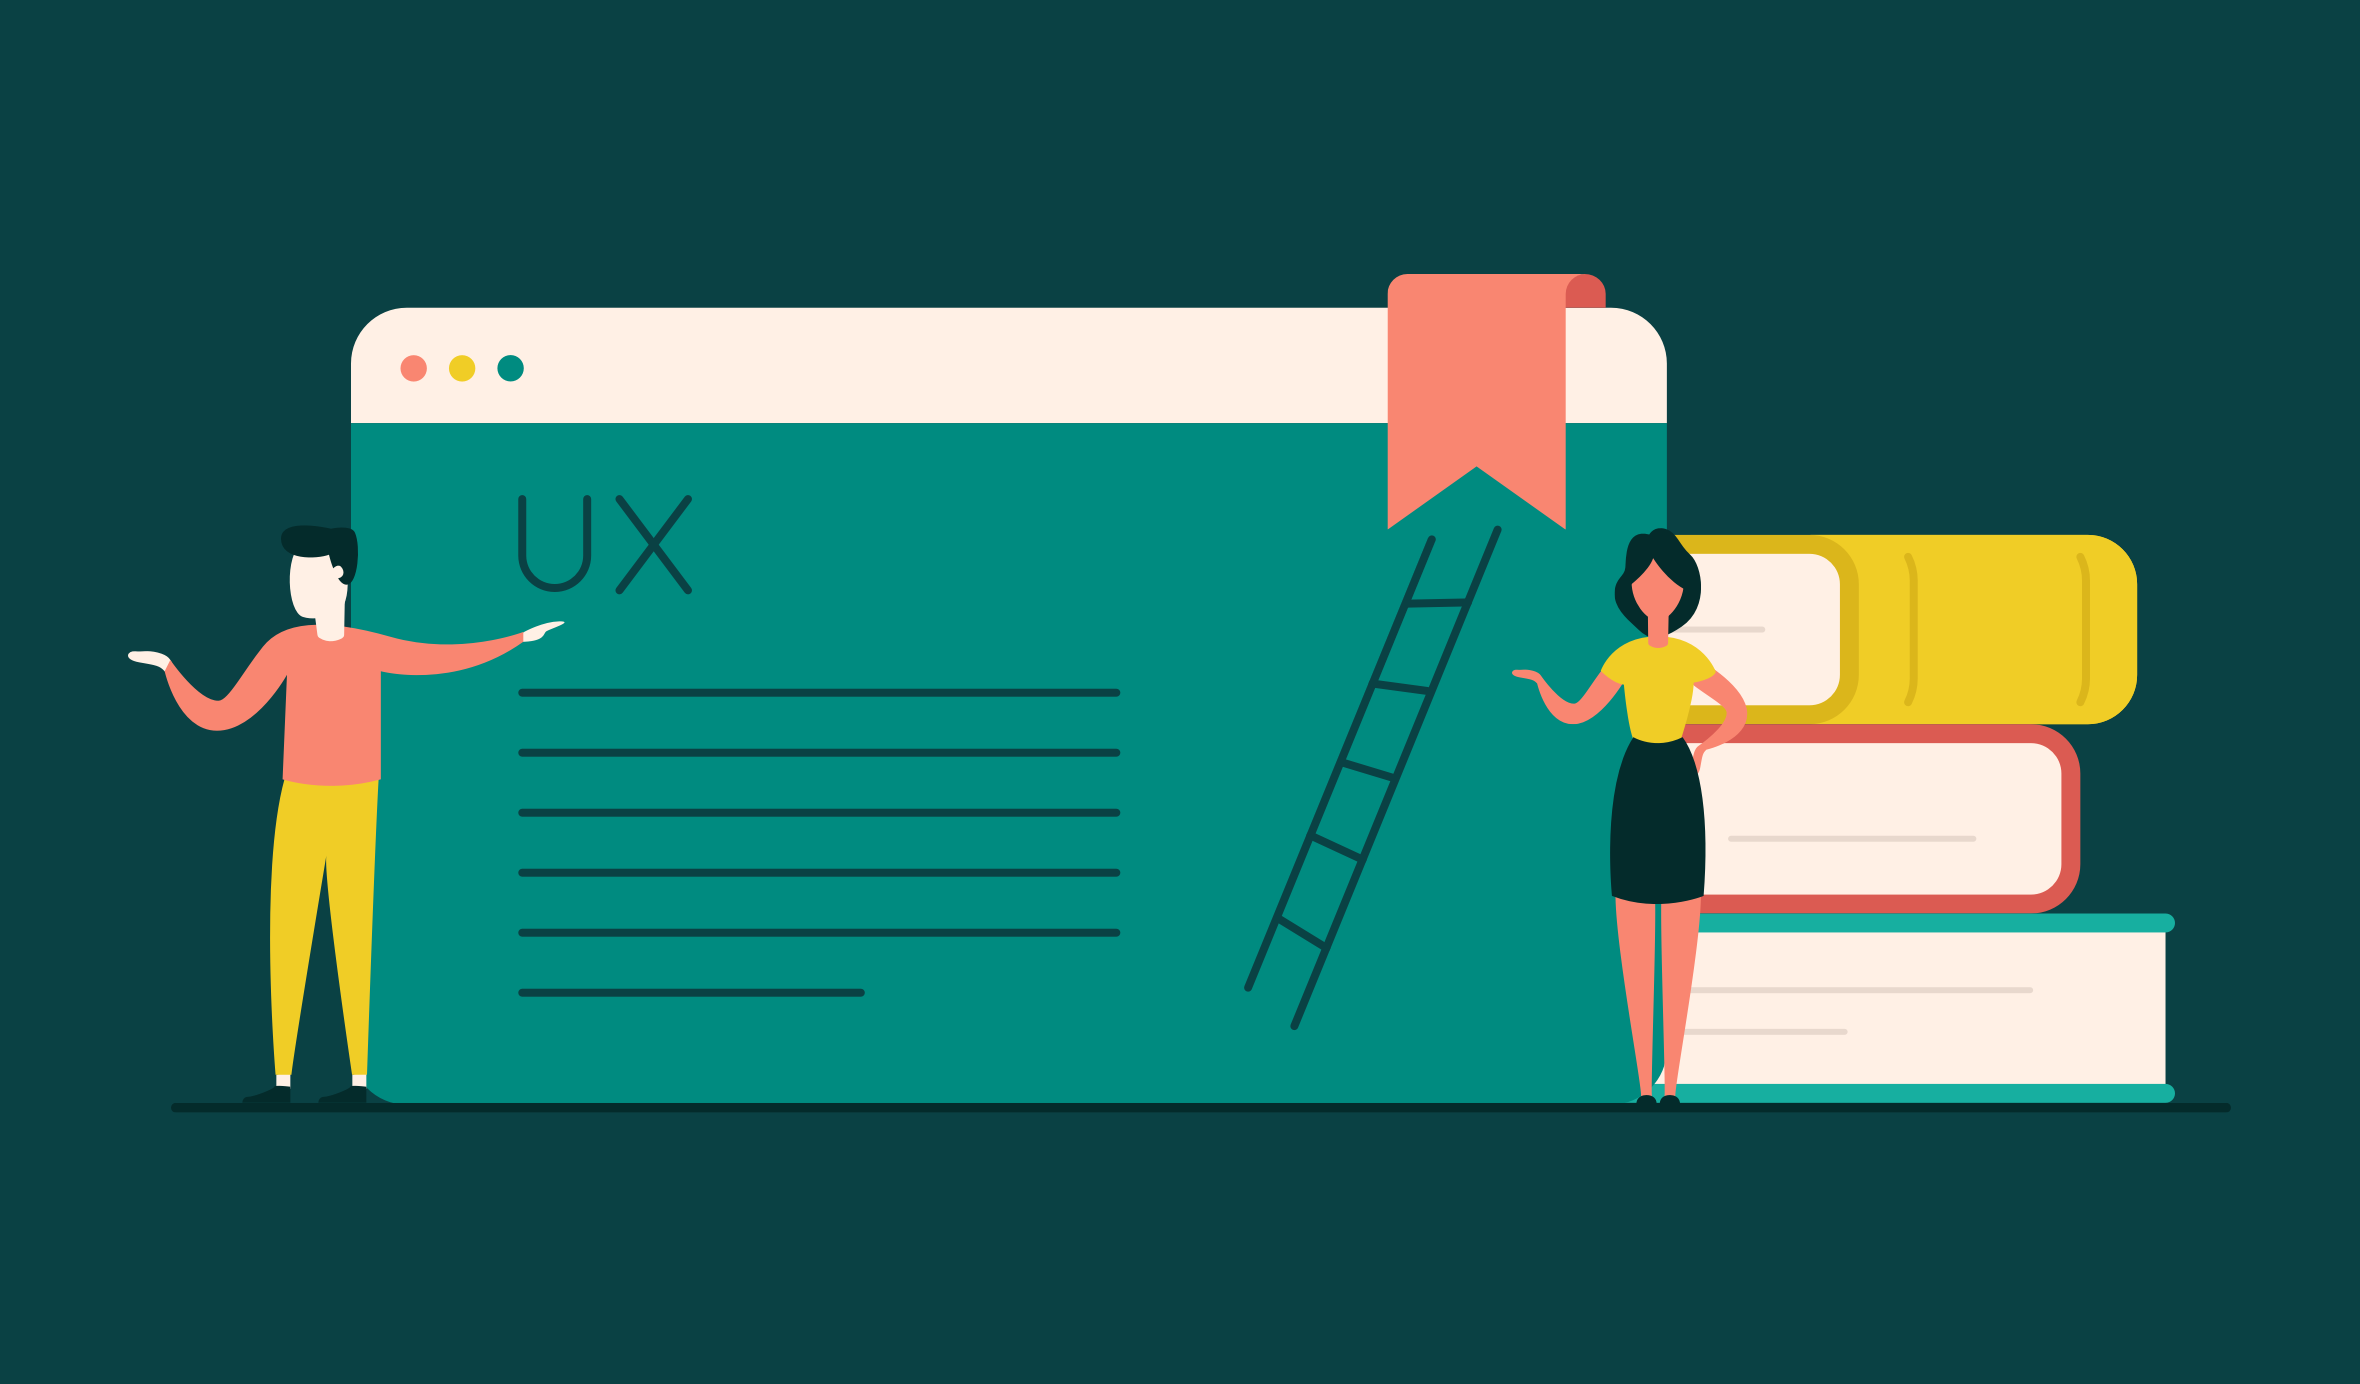 How to Really Train a UX Team